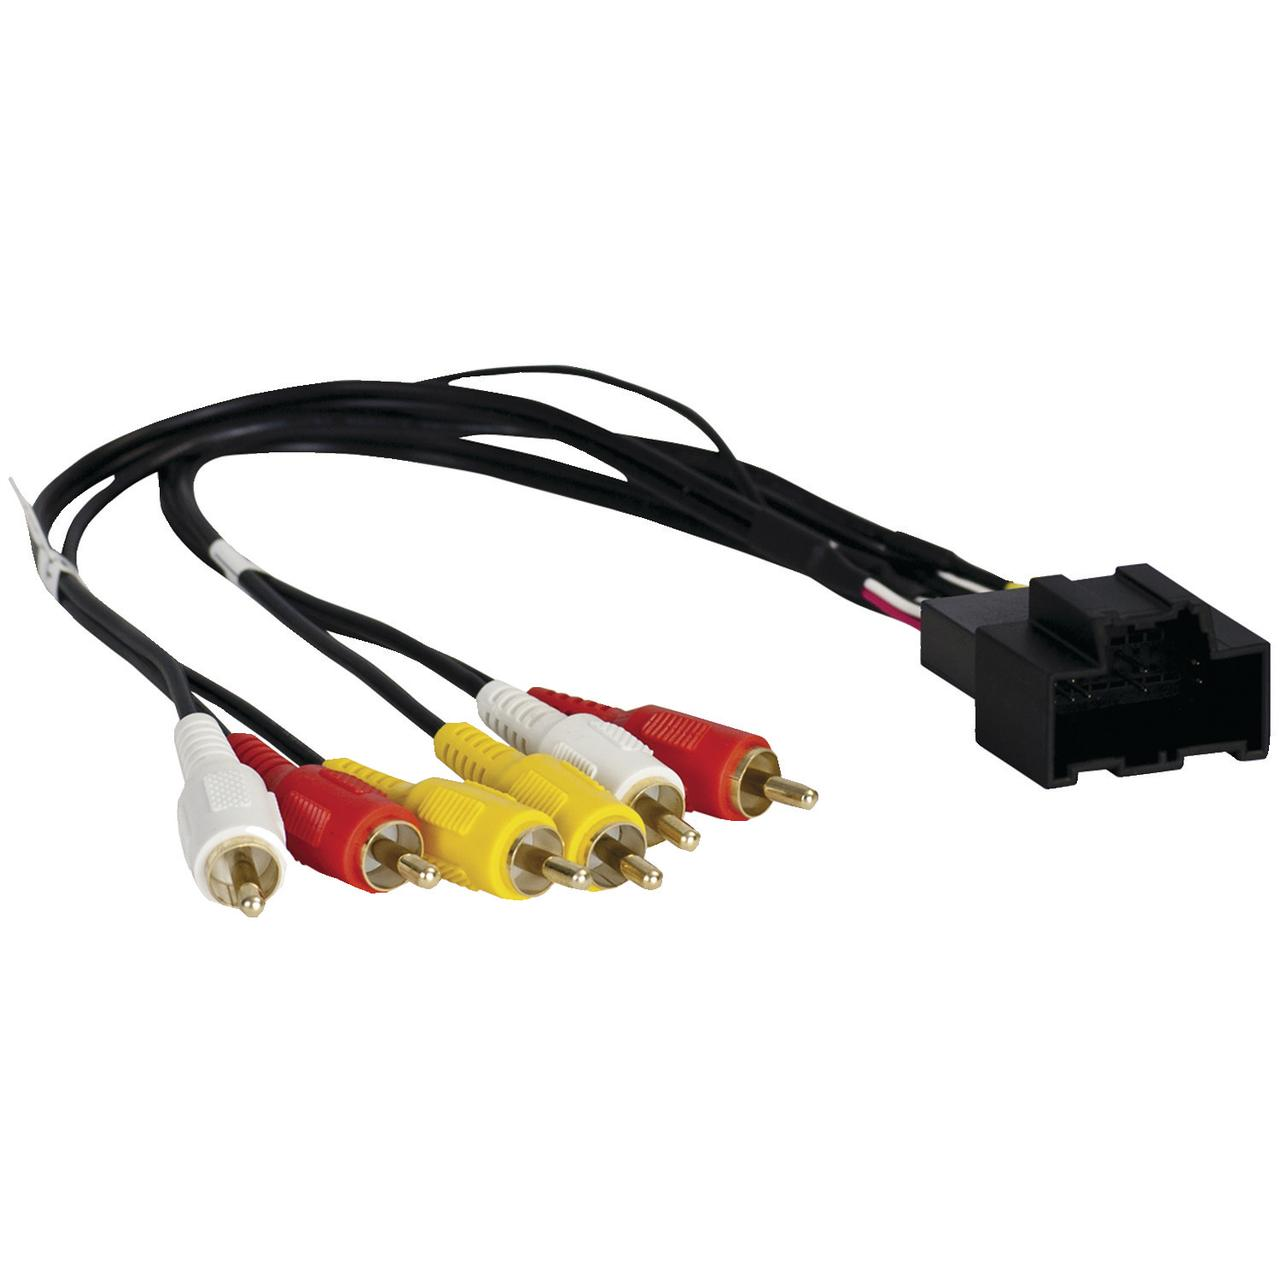 Axxess GMRSAV-2 Rse A/V Wiring Harness For 2012-2014 GM Vehicles With Nav